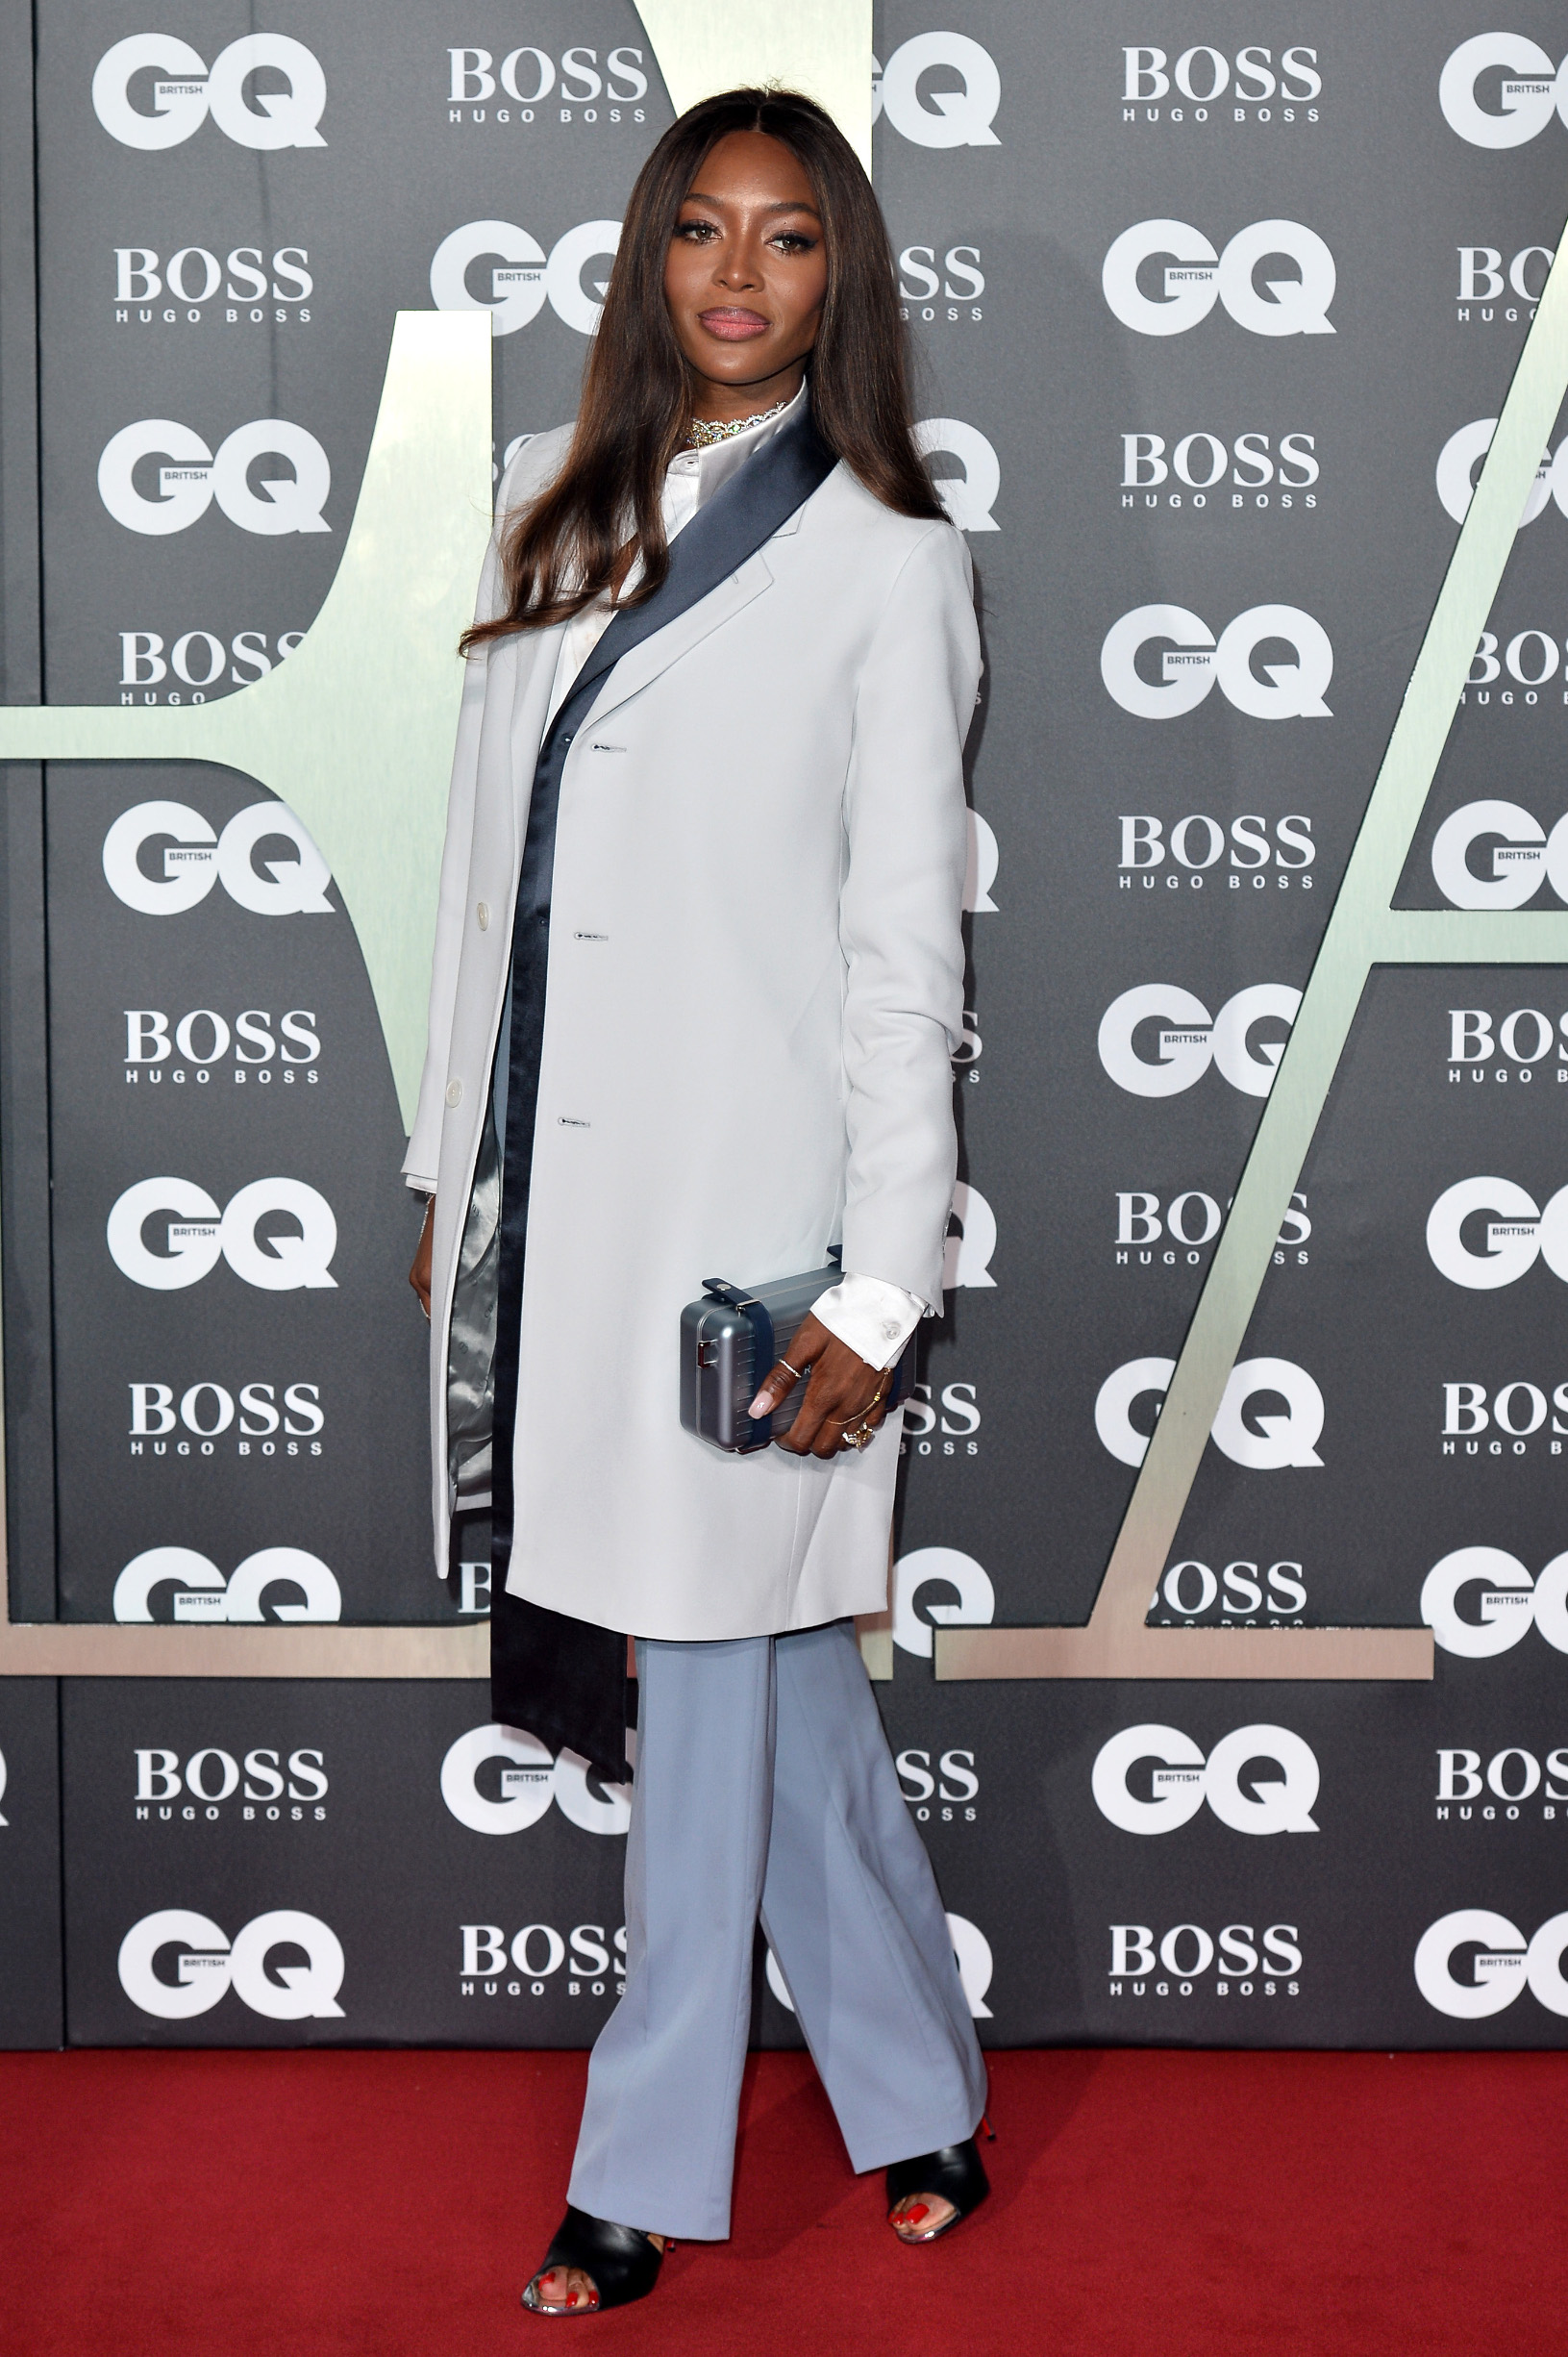 LONDON, ENGLAND - SEPTEMBER 03: Naomi Campbell attends the GQ Men Of The Year Awards 2019 at Tate Modern on September 03, 2019 in London, England. (Photo by Jeff Spicer/Getty Images)